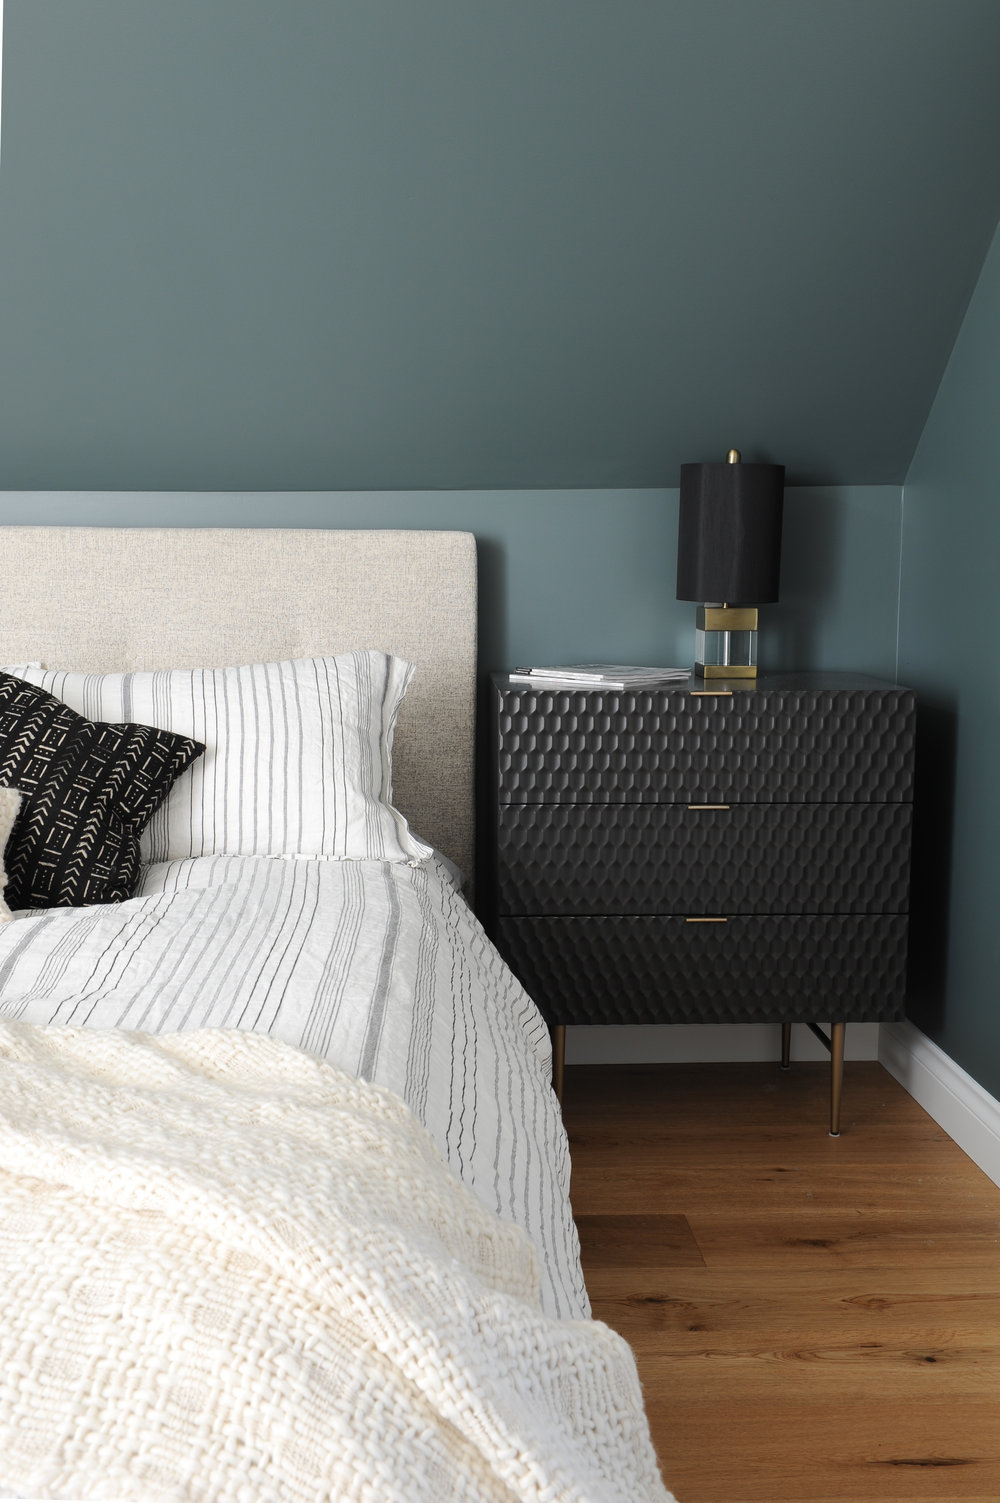 A black textured night stand doubles as a dresser, where a black lamp shaded light fixture sits on top, next to a bed with a tan coloured headboard and striped sheets.